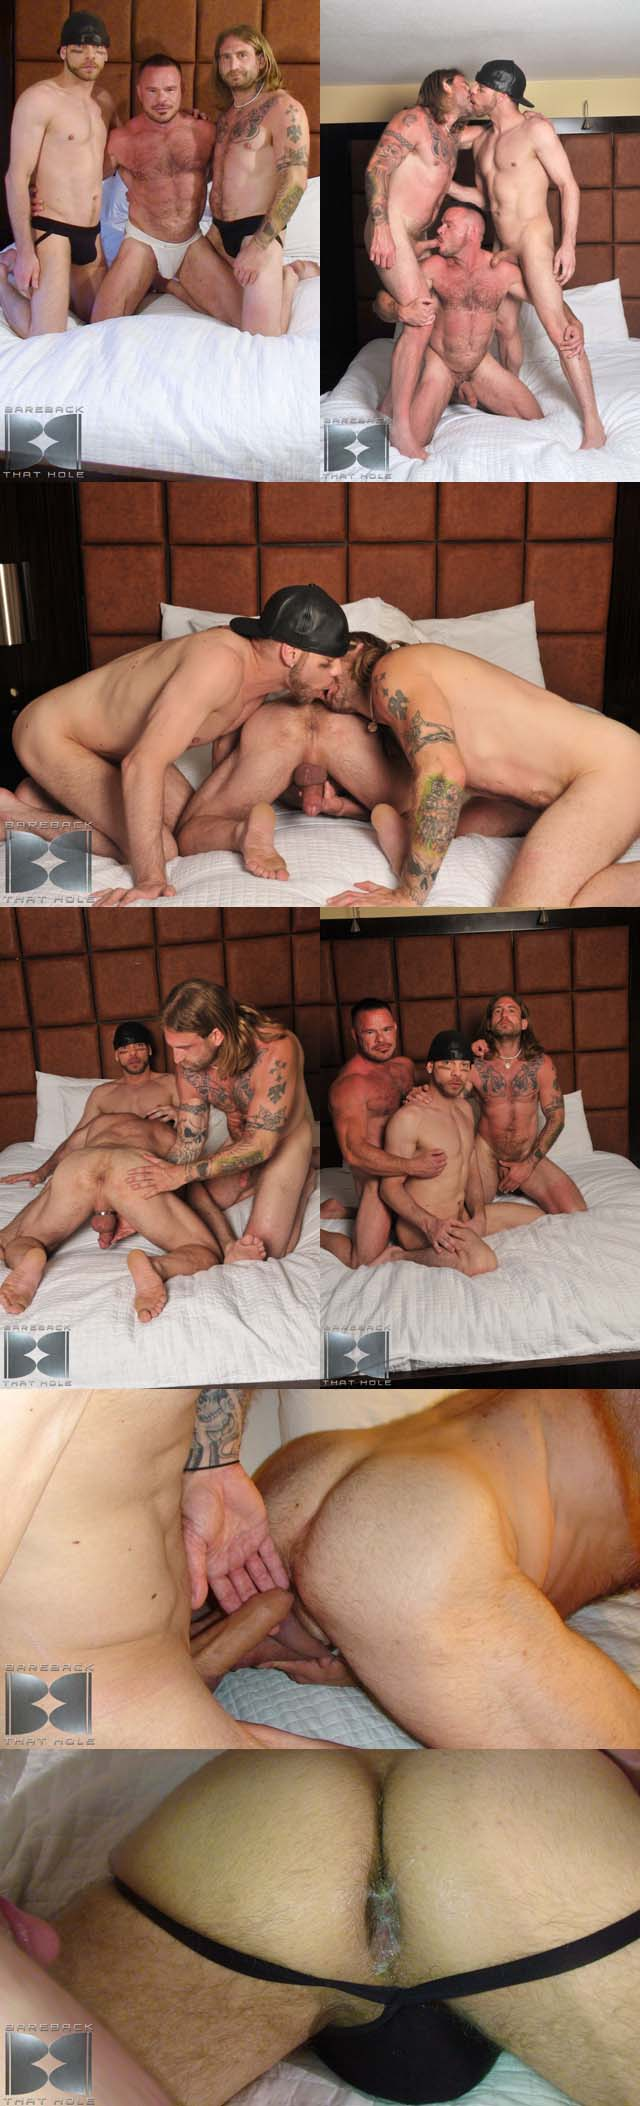 Blonde guys Gay Porn greg peter graphics collage kasey